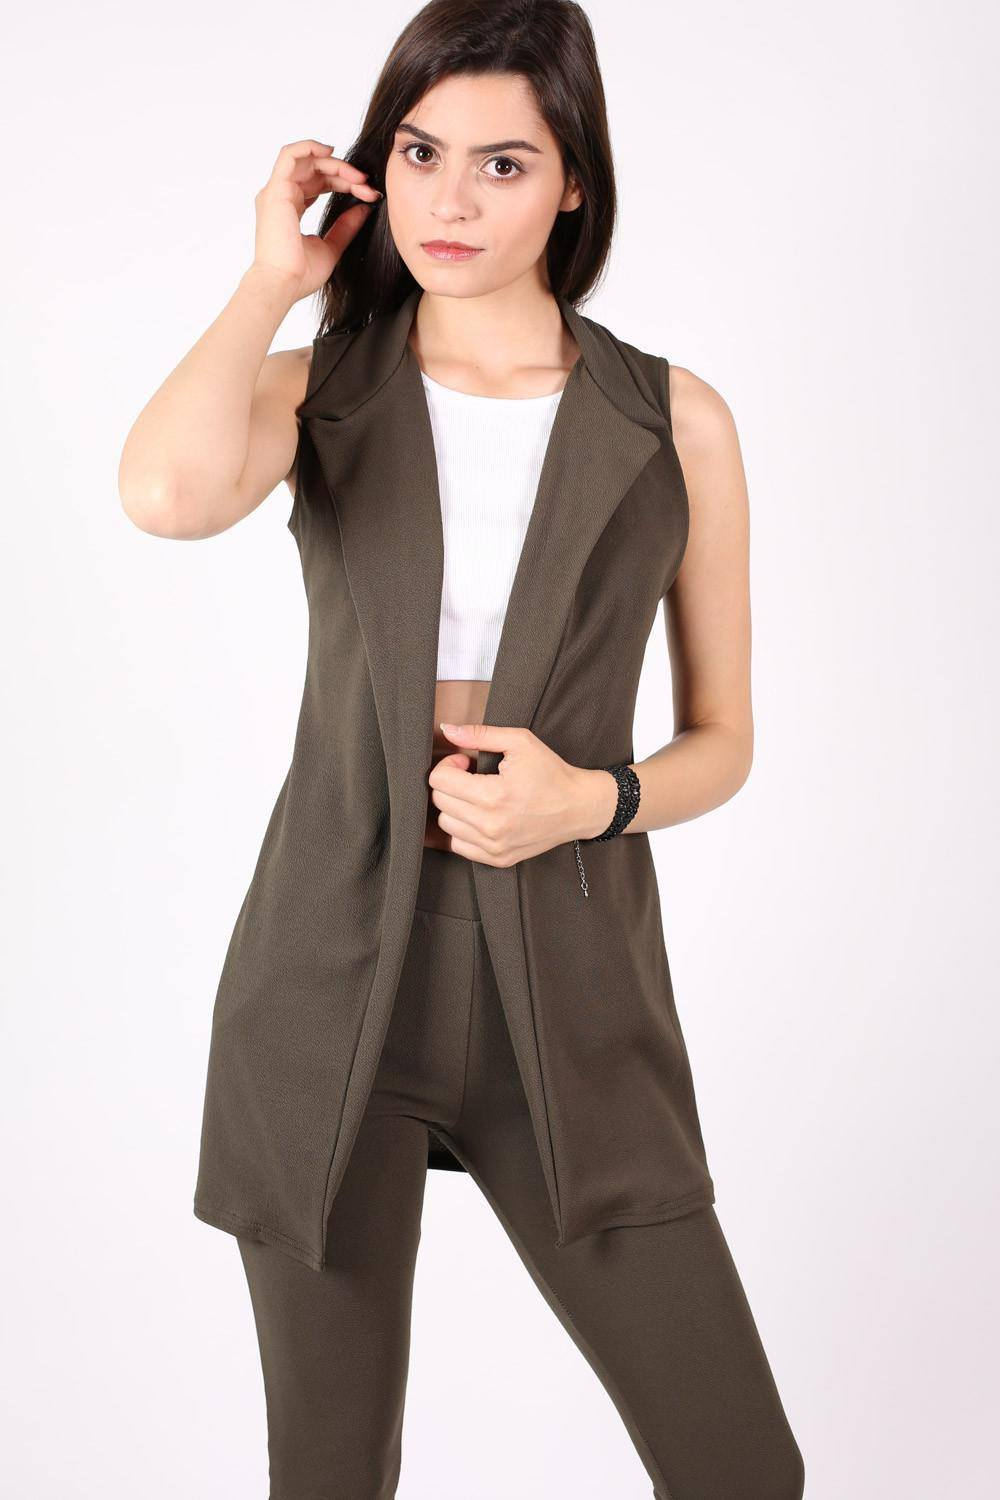 Textured Sleeveless Open Jacket in Khaki Green 0